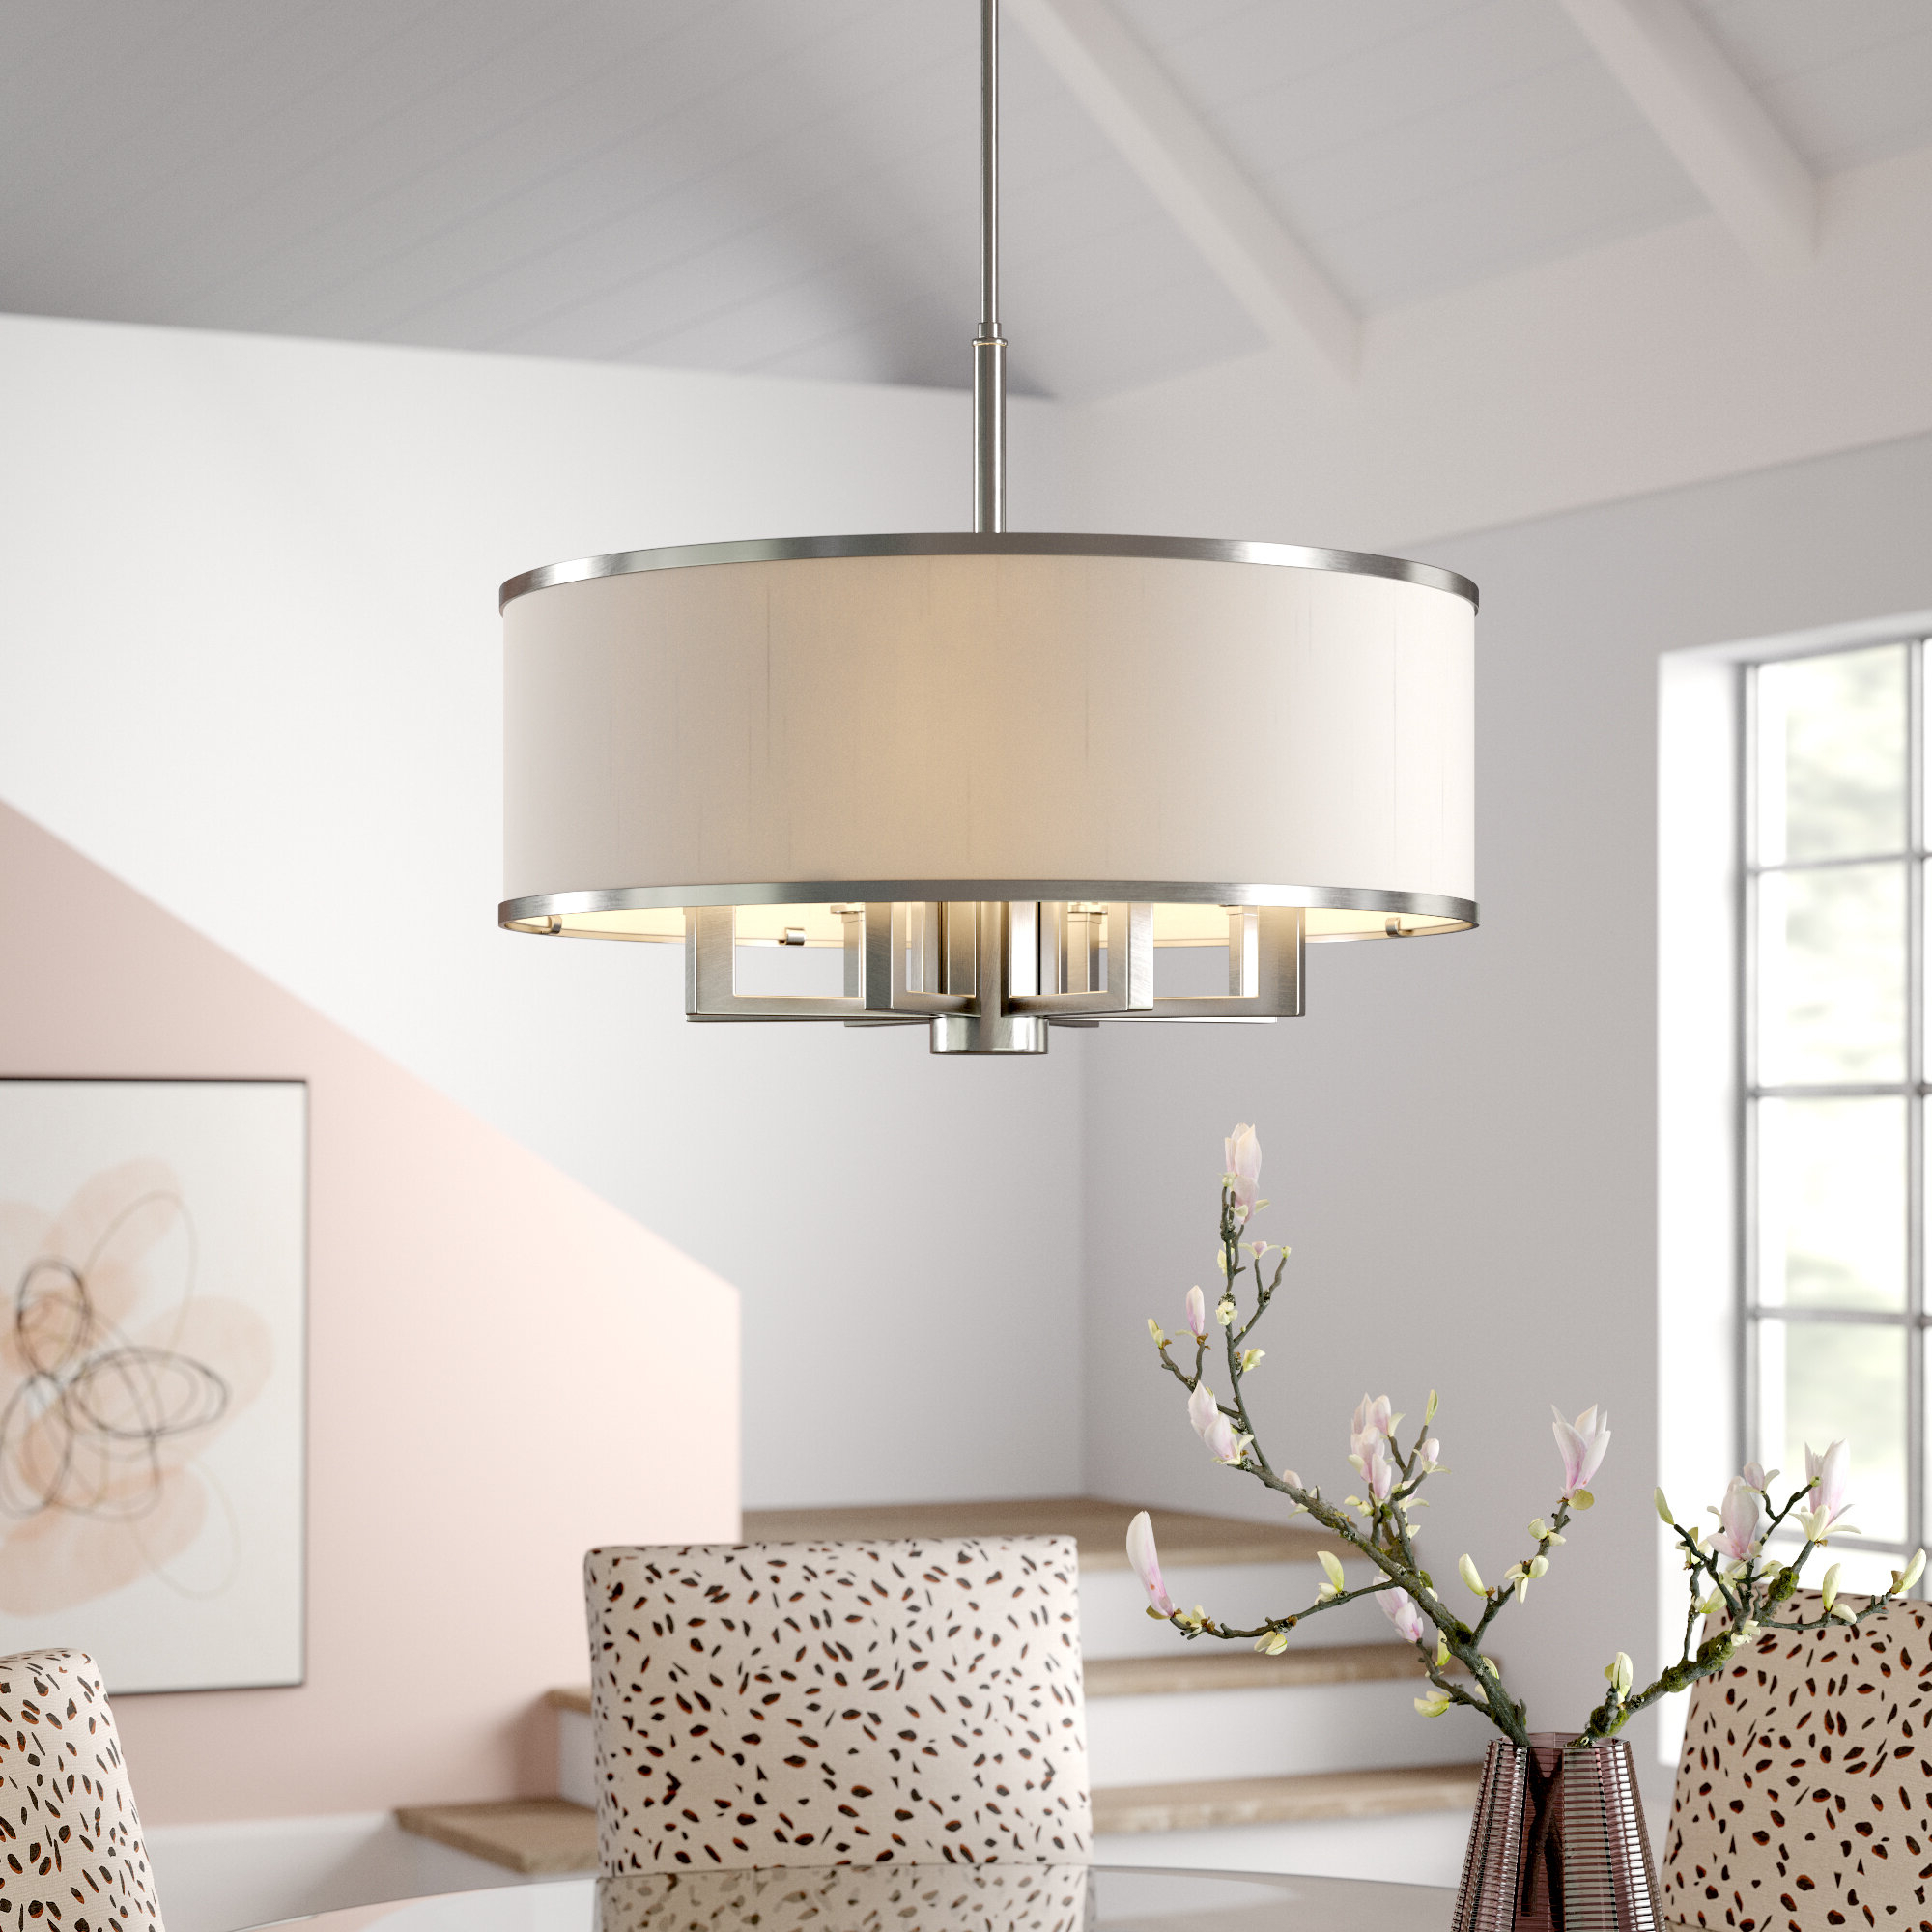 Friedland 3 Light Drum Tiered Pendants In Most Recent Breithaup 7 Light Drum Chandelier & Reviews (View 14 of 25)